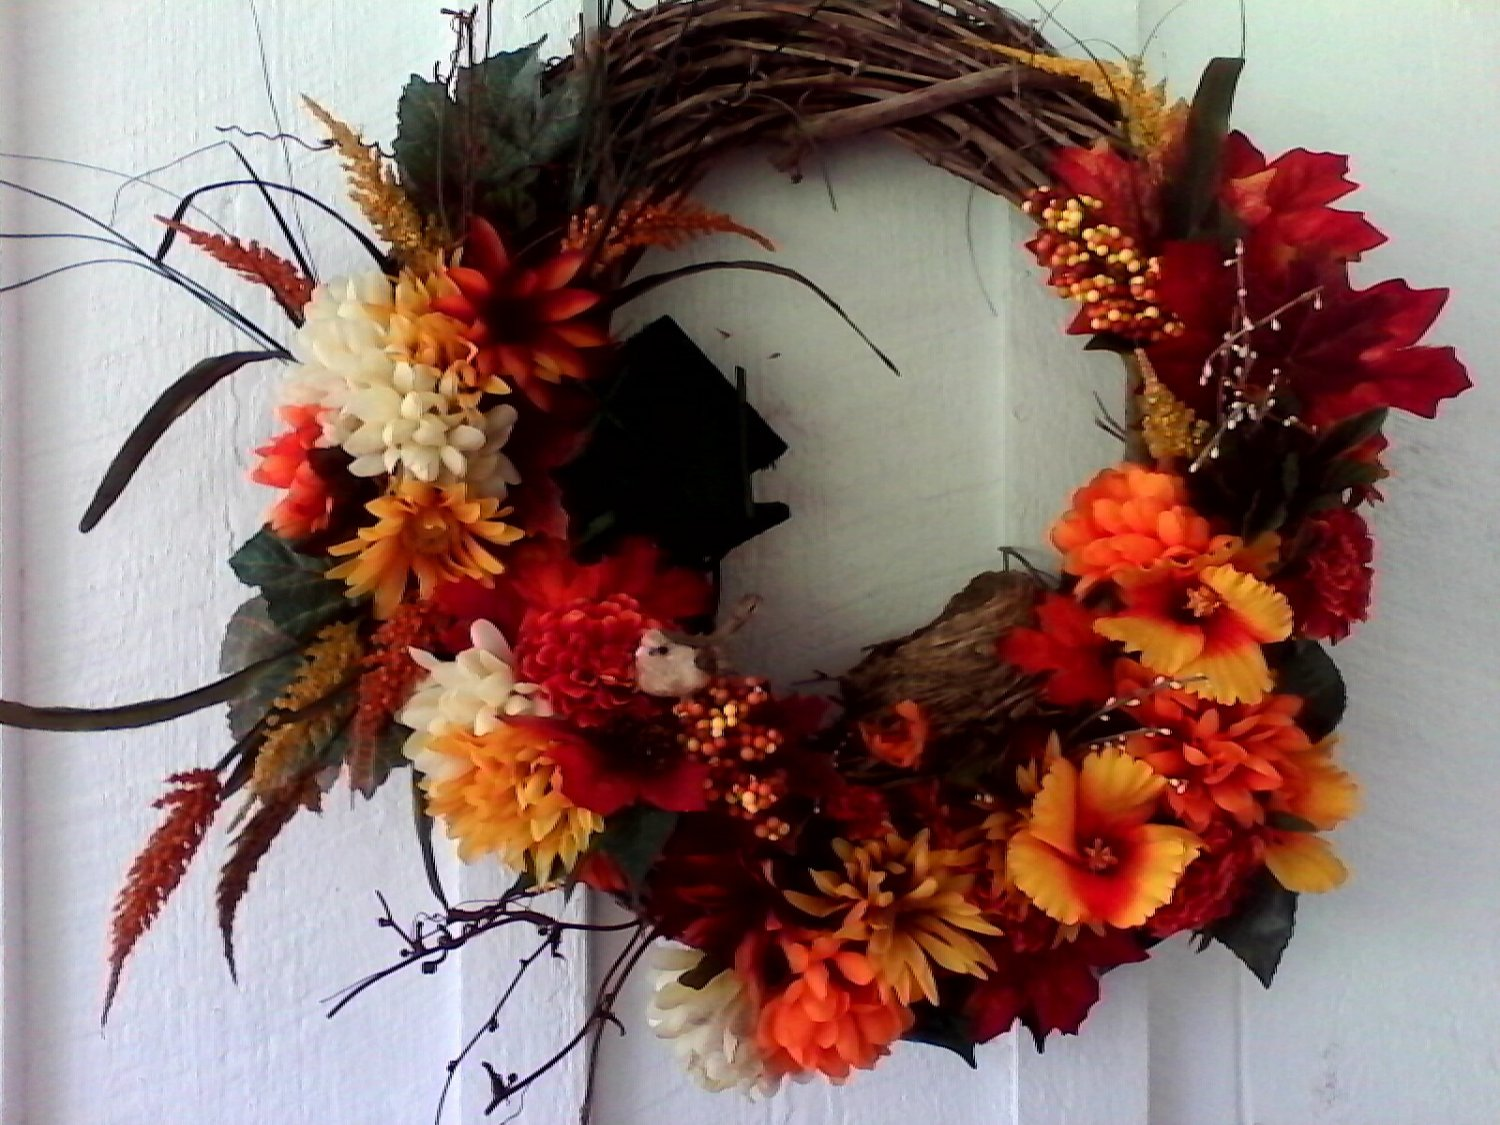 Autumn Wreath with Birdhouse and Nest *PRICE REDUCED*